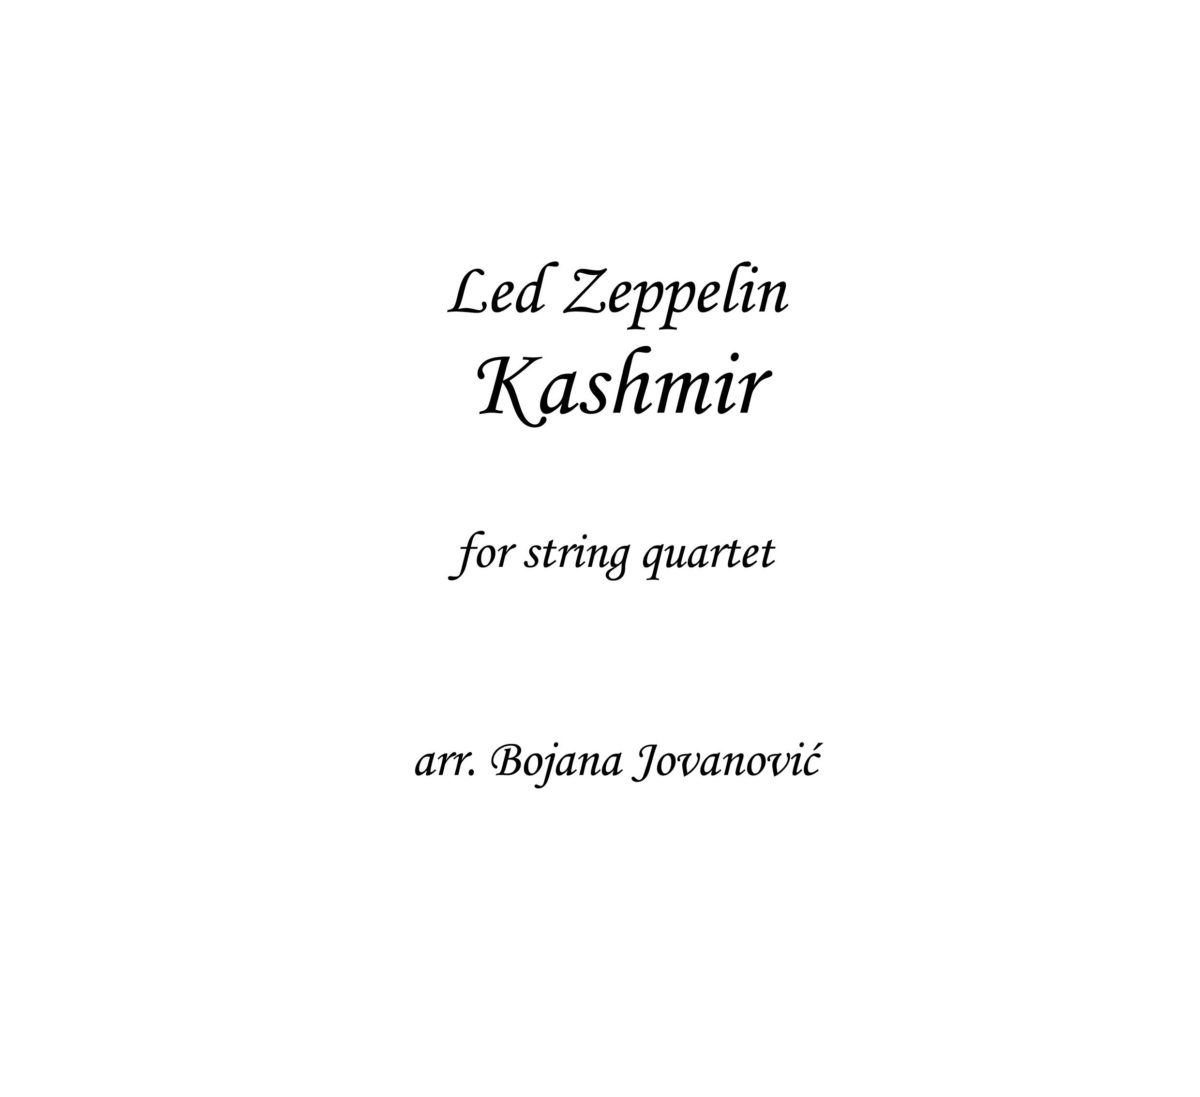 Kashmir (Led Zeppelin) - Sheet Music